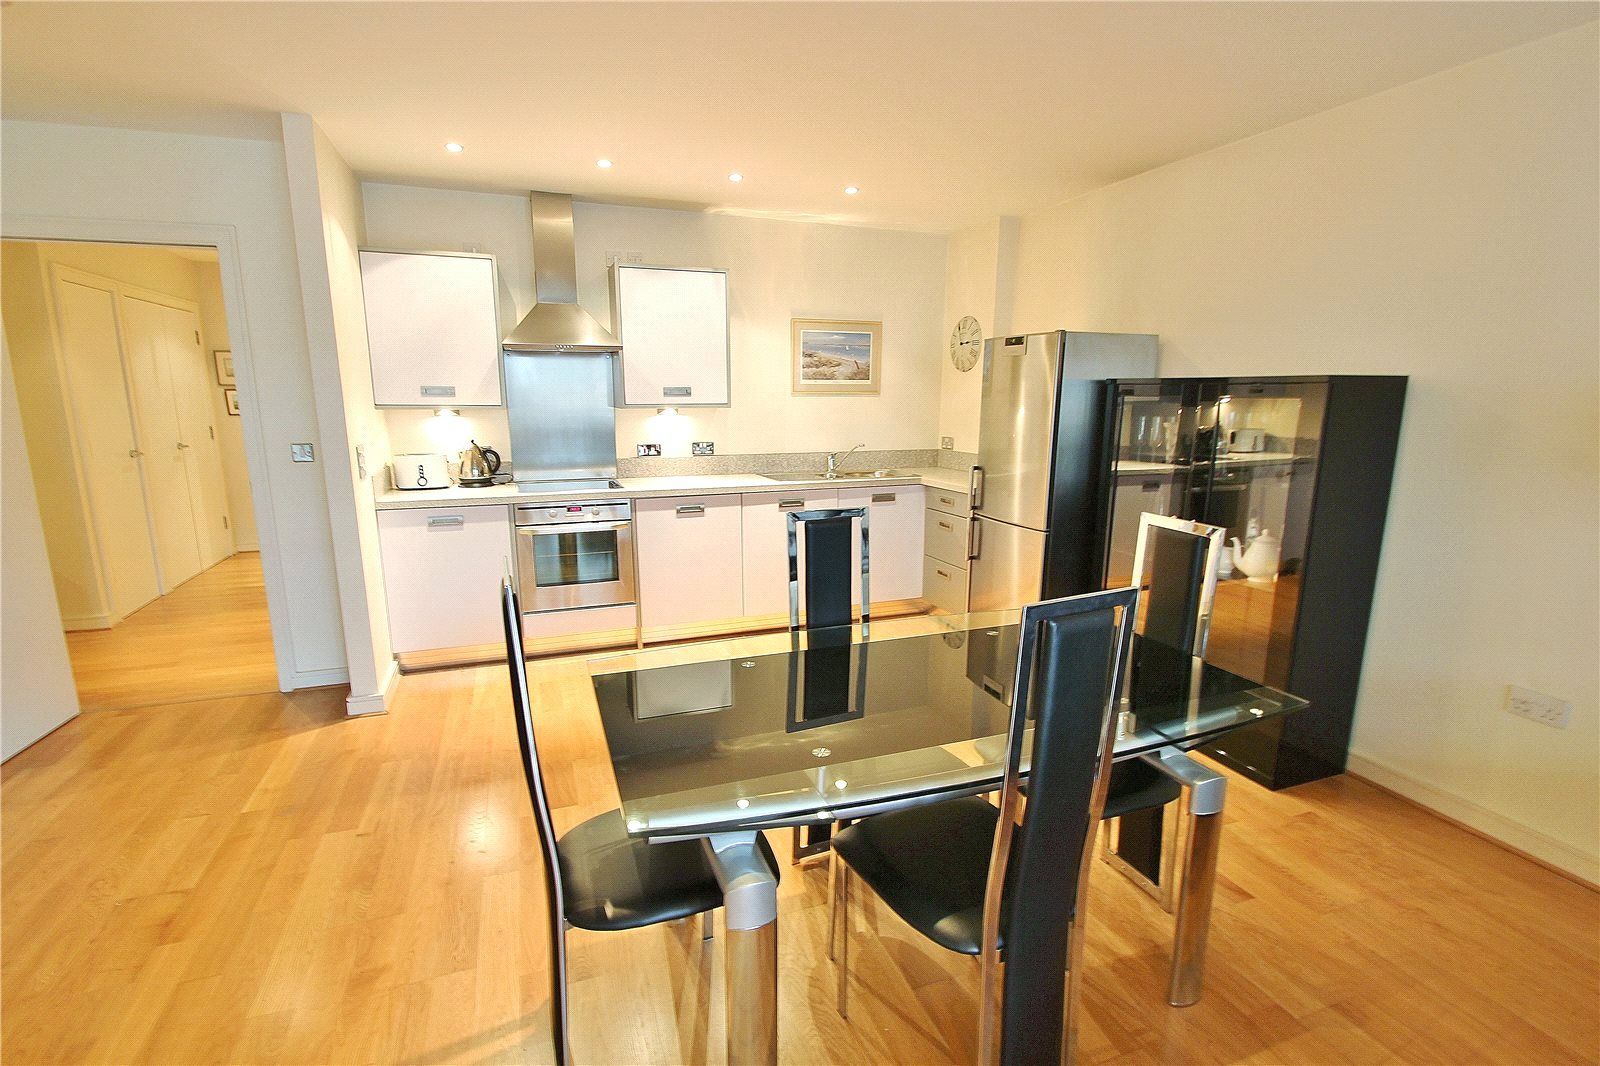 Cj Hole Clifton Old 2 Bedroom Flat For Sale In Thomas